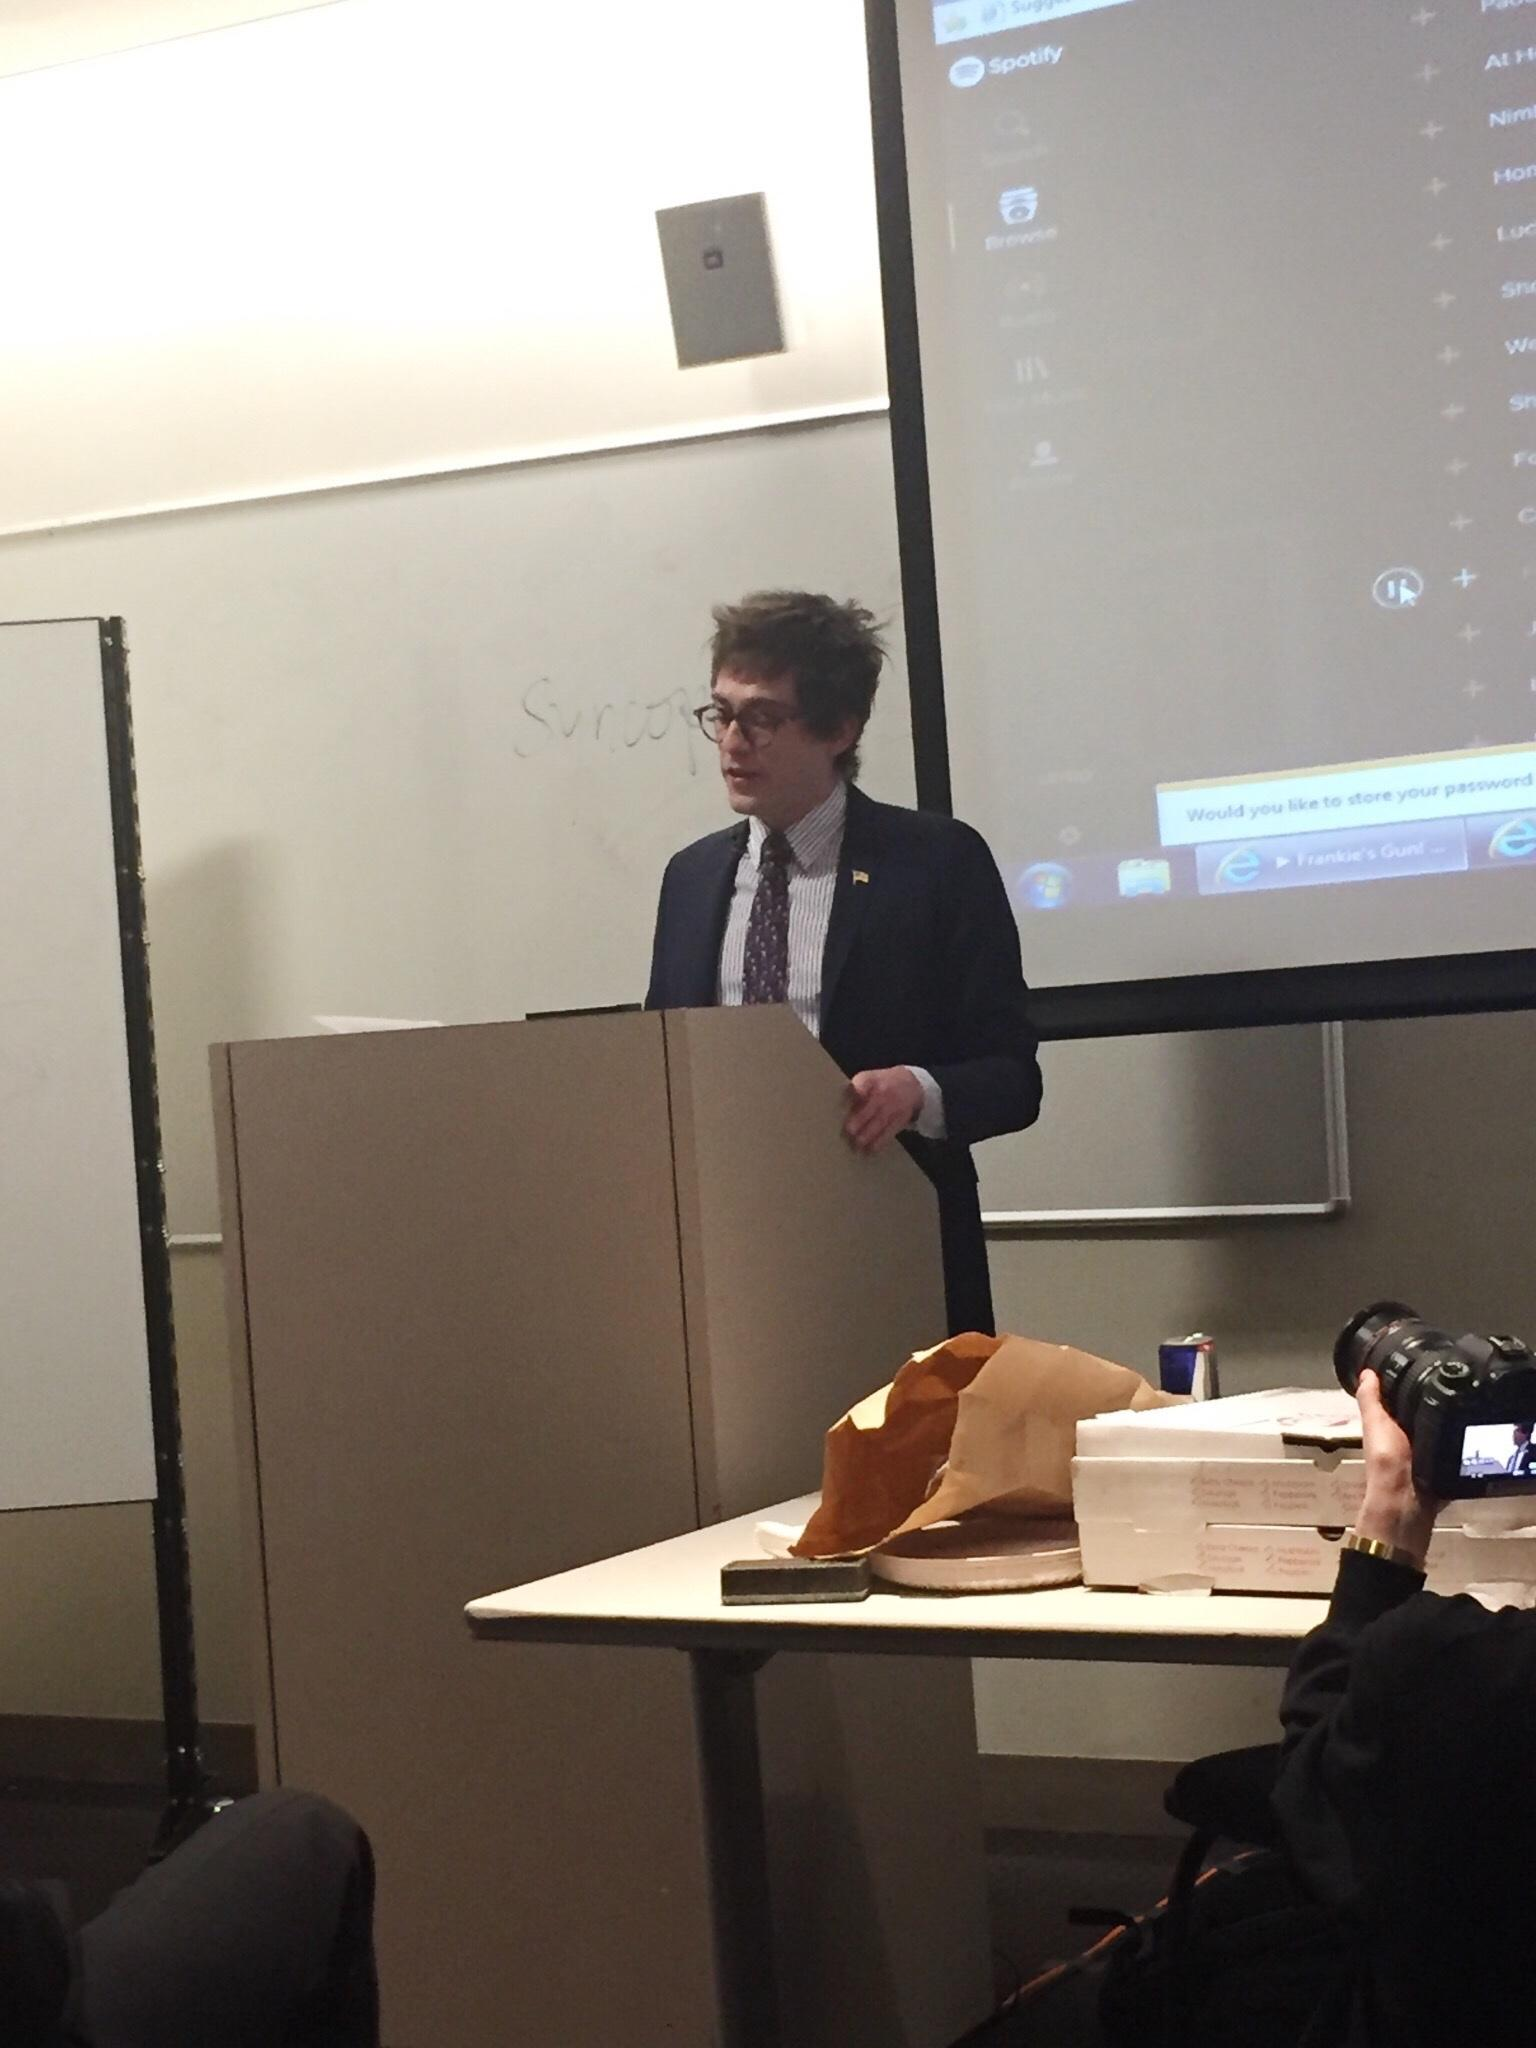 White House correspondent for Gateway Pundit attended the university as a guest speaker for the NYU College Republicans.